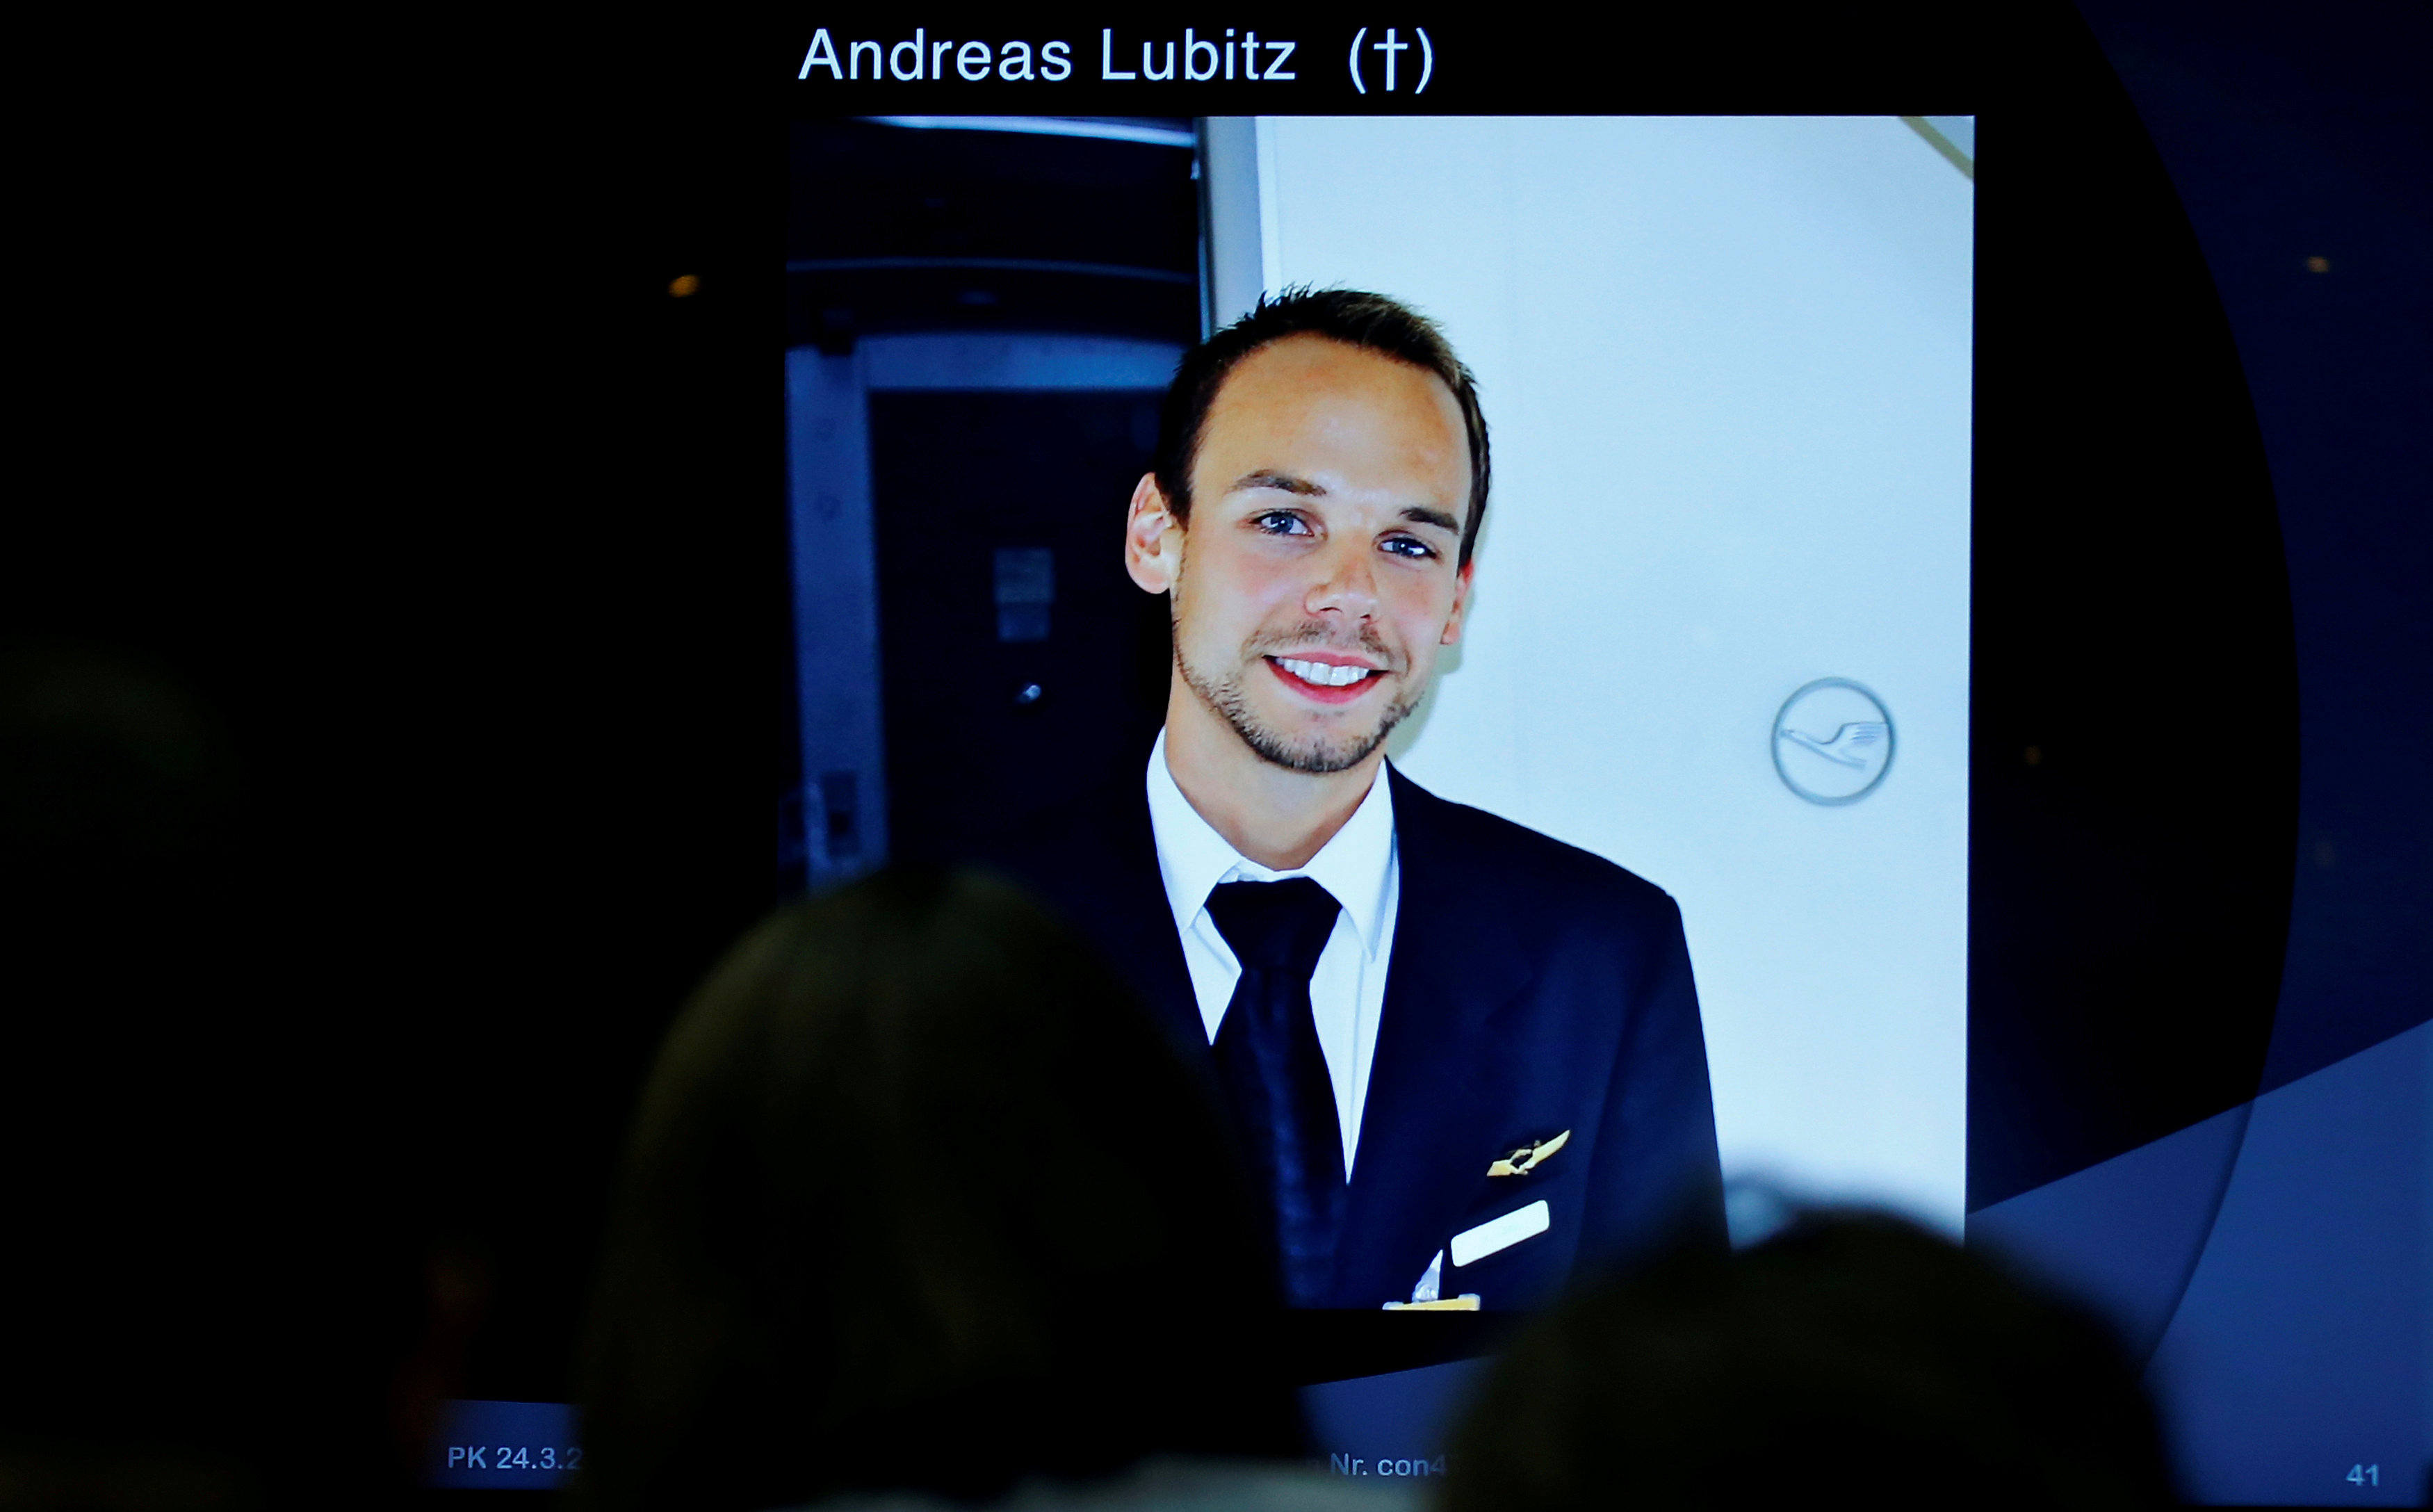 FILE PHOTO: A screen shows a picture of Andreas Lubitz during news conference of Guenter Lubitz in Berlin